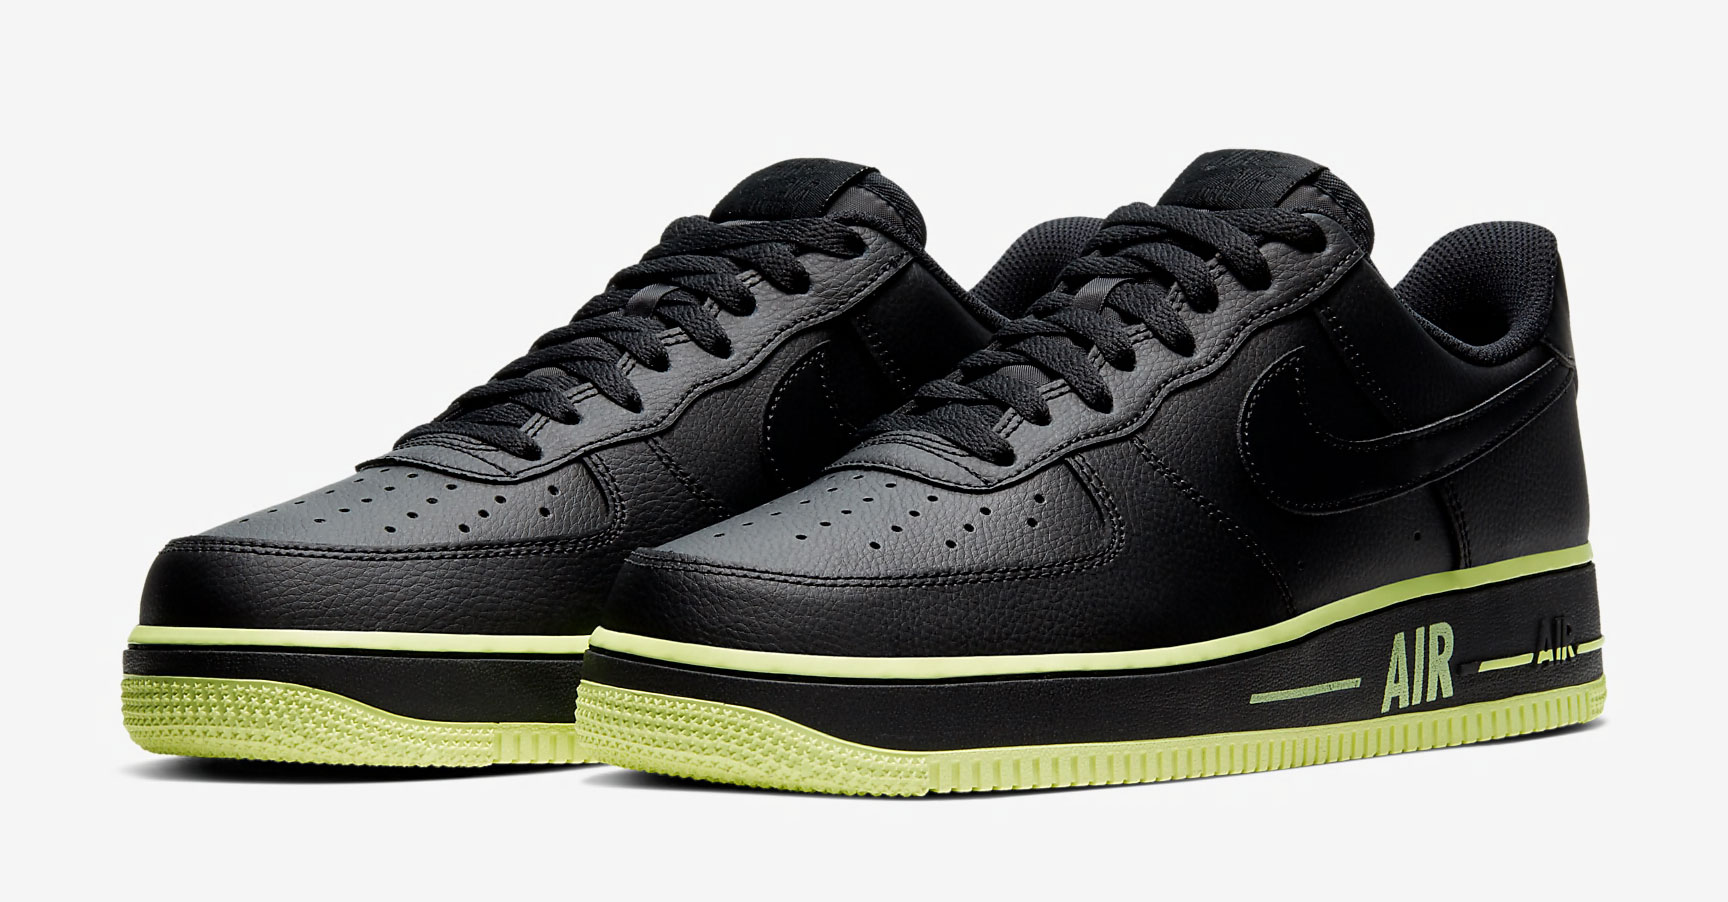 nike-air-force-1-low-lv8-3-black-volt-1